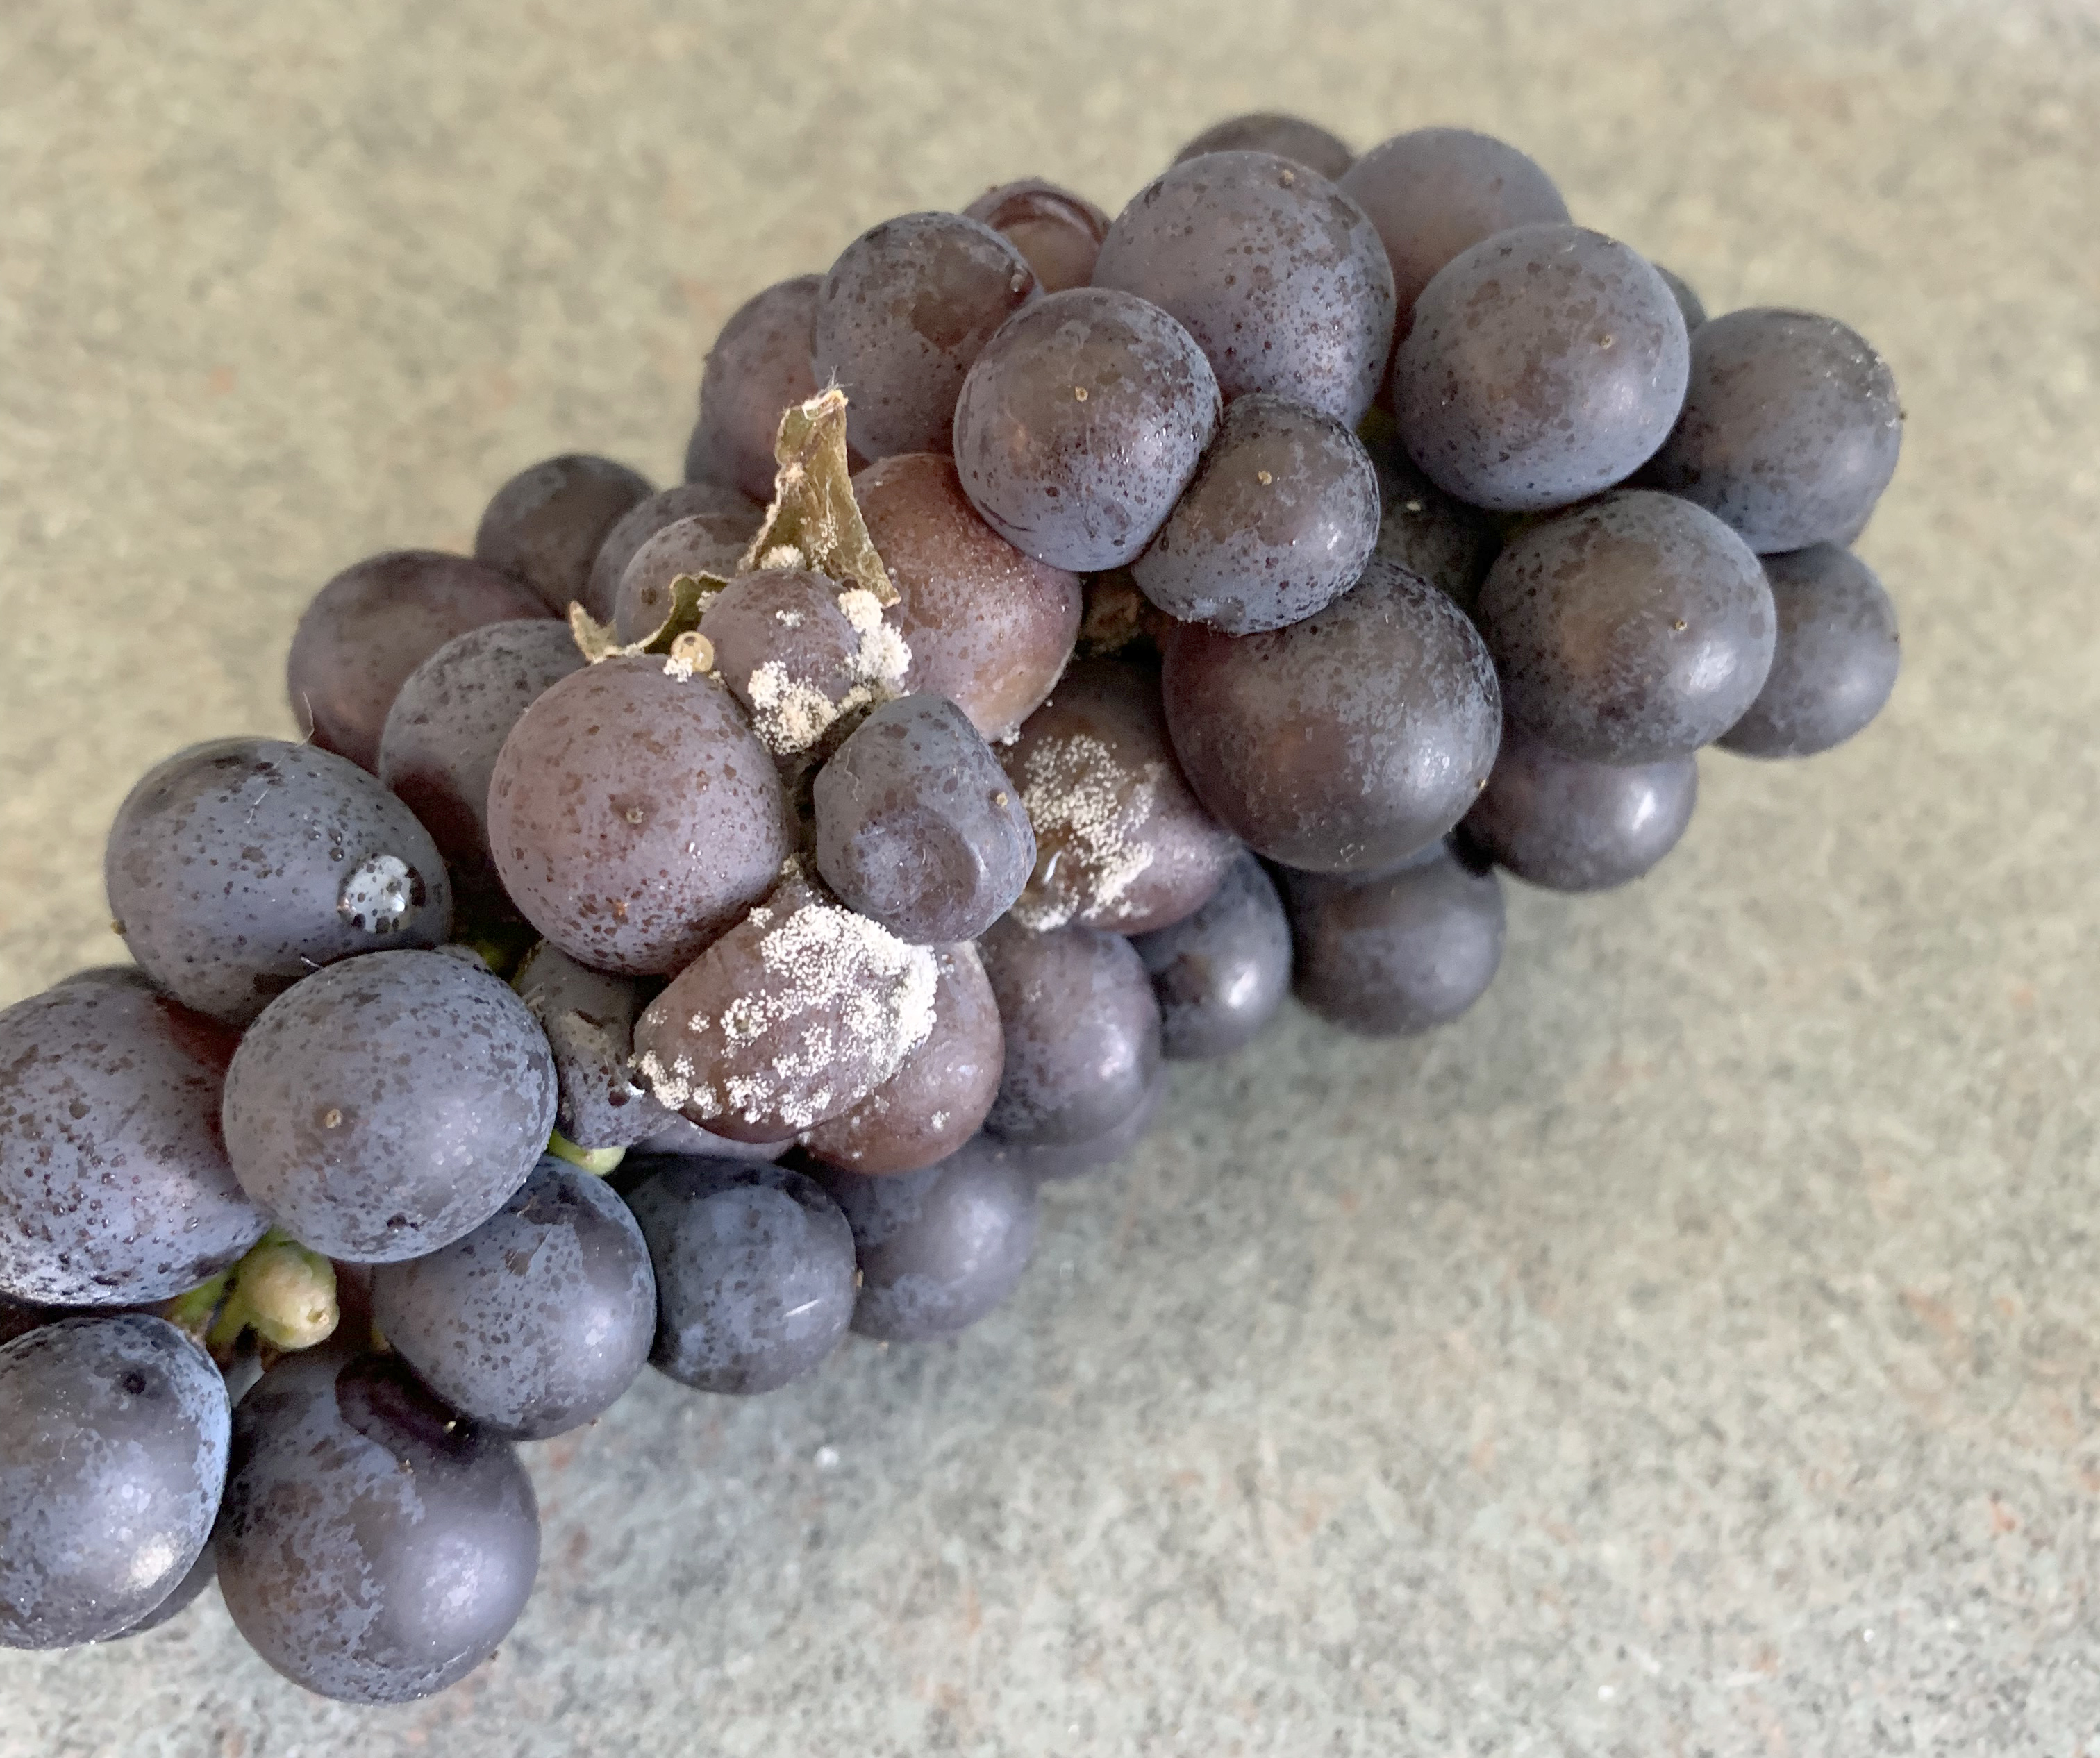 Pinot Noir cluster with Botrytis infected berries